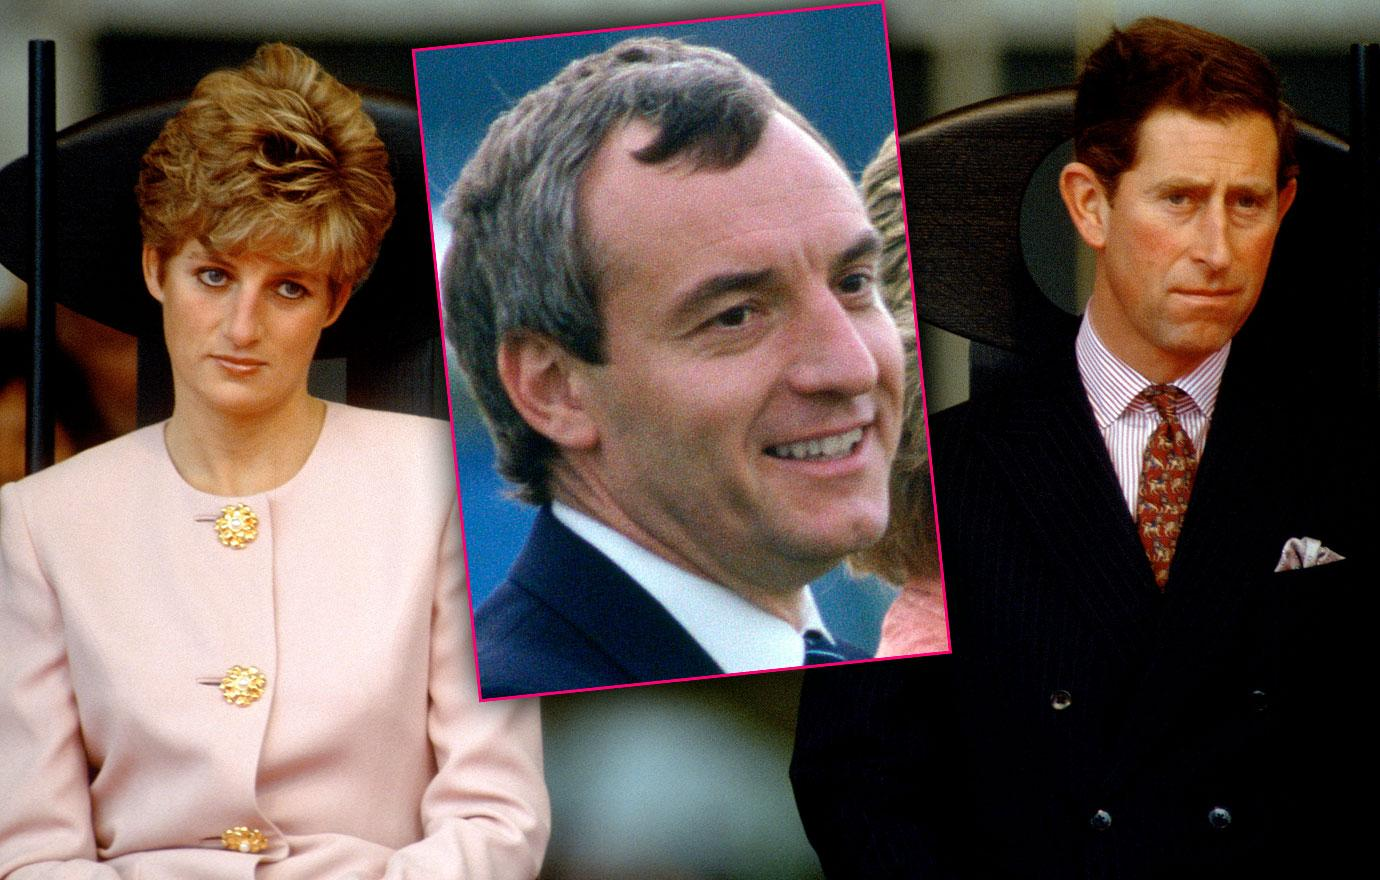 Princess Diana Said Charles Only Wanted Sex Every Three Weeks